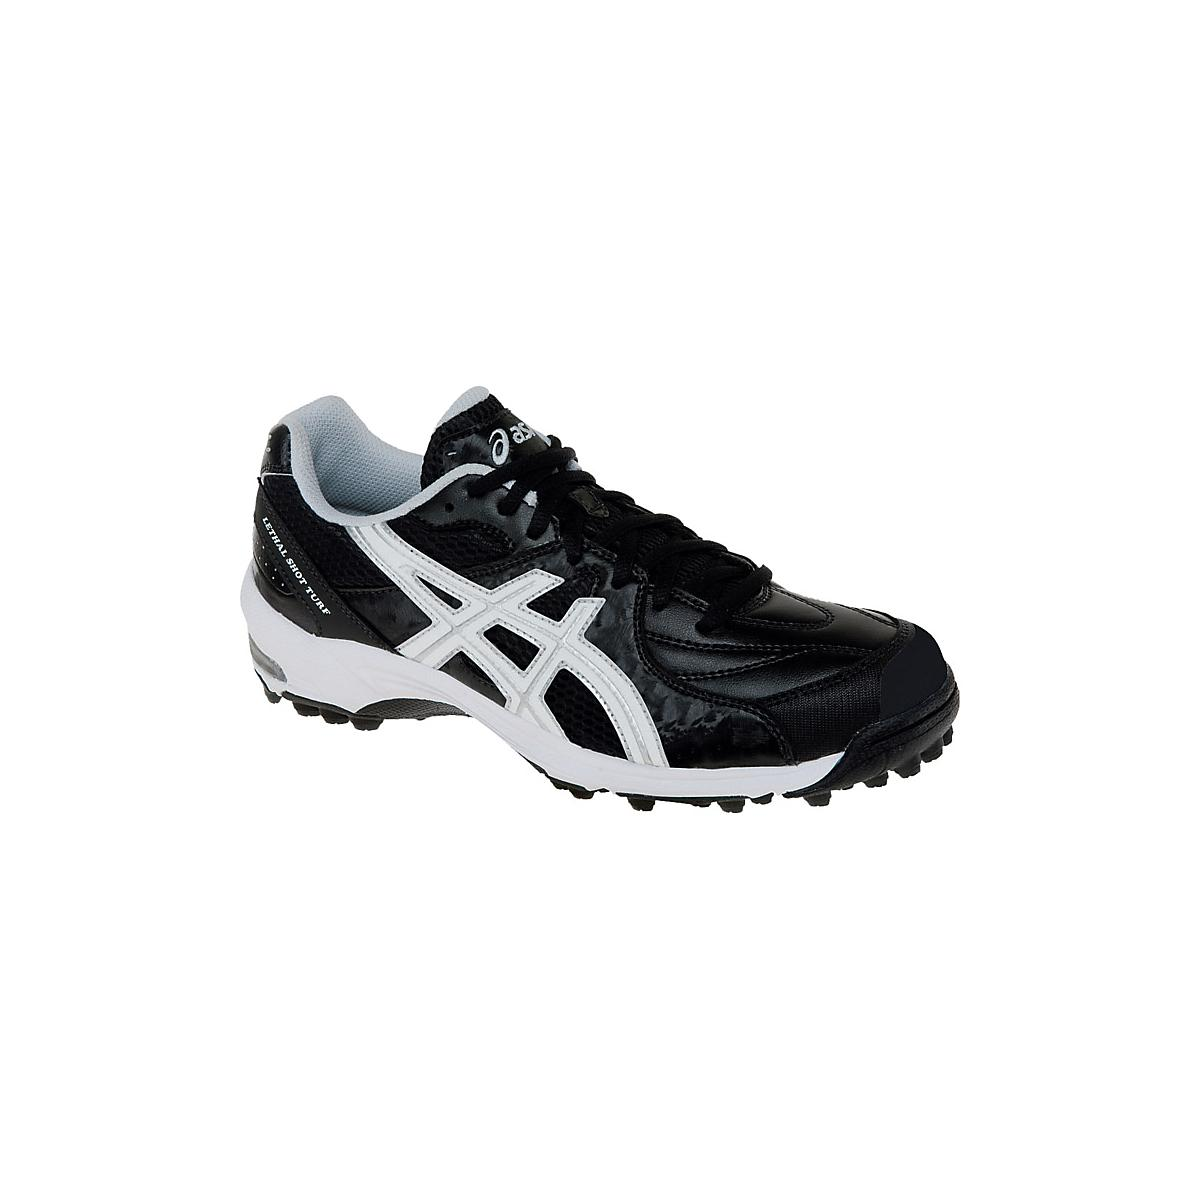 e2f1eb9da7f Mens ASICS GEL-Lethal Shot Turf Track and Field Shoe at Road Runner Sports